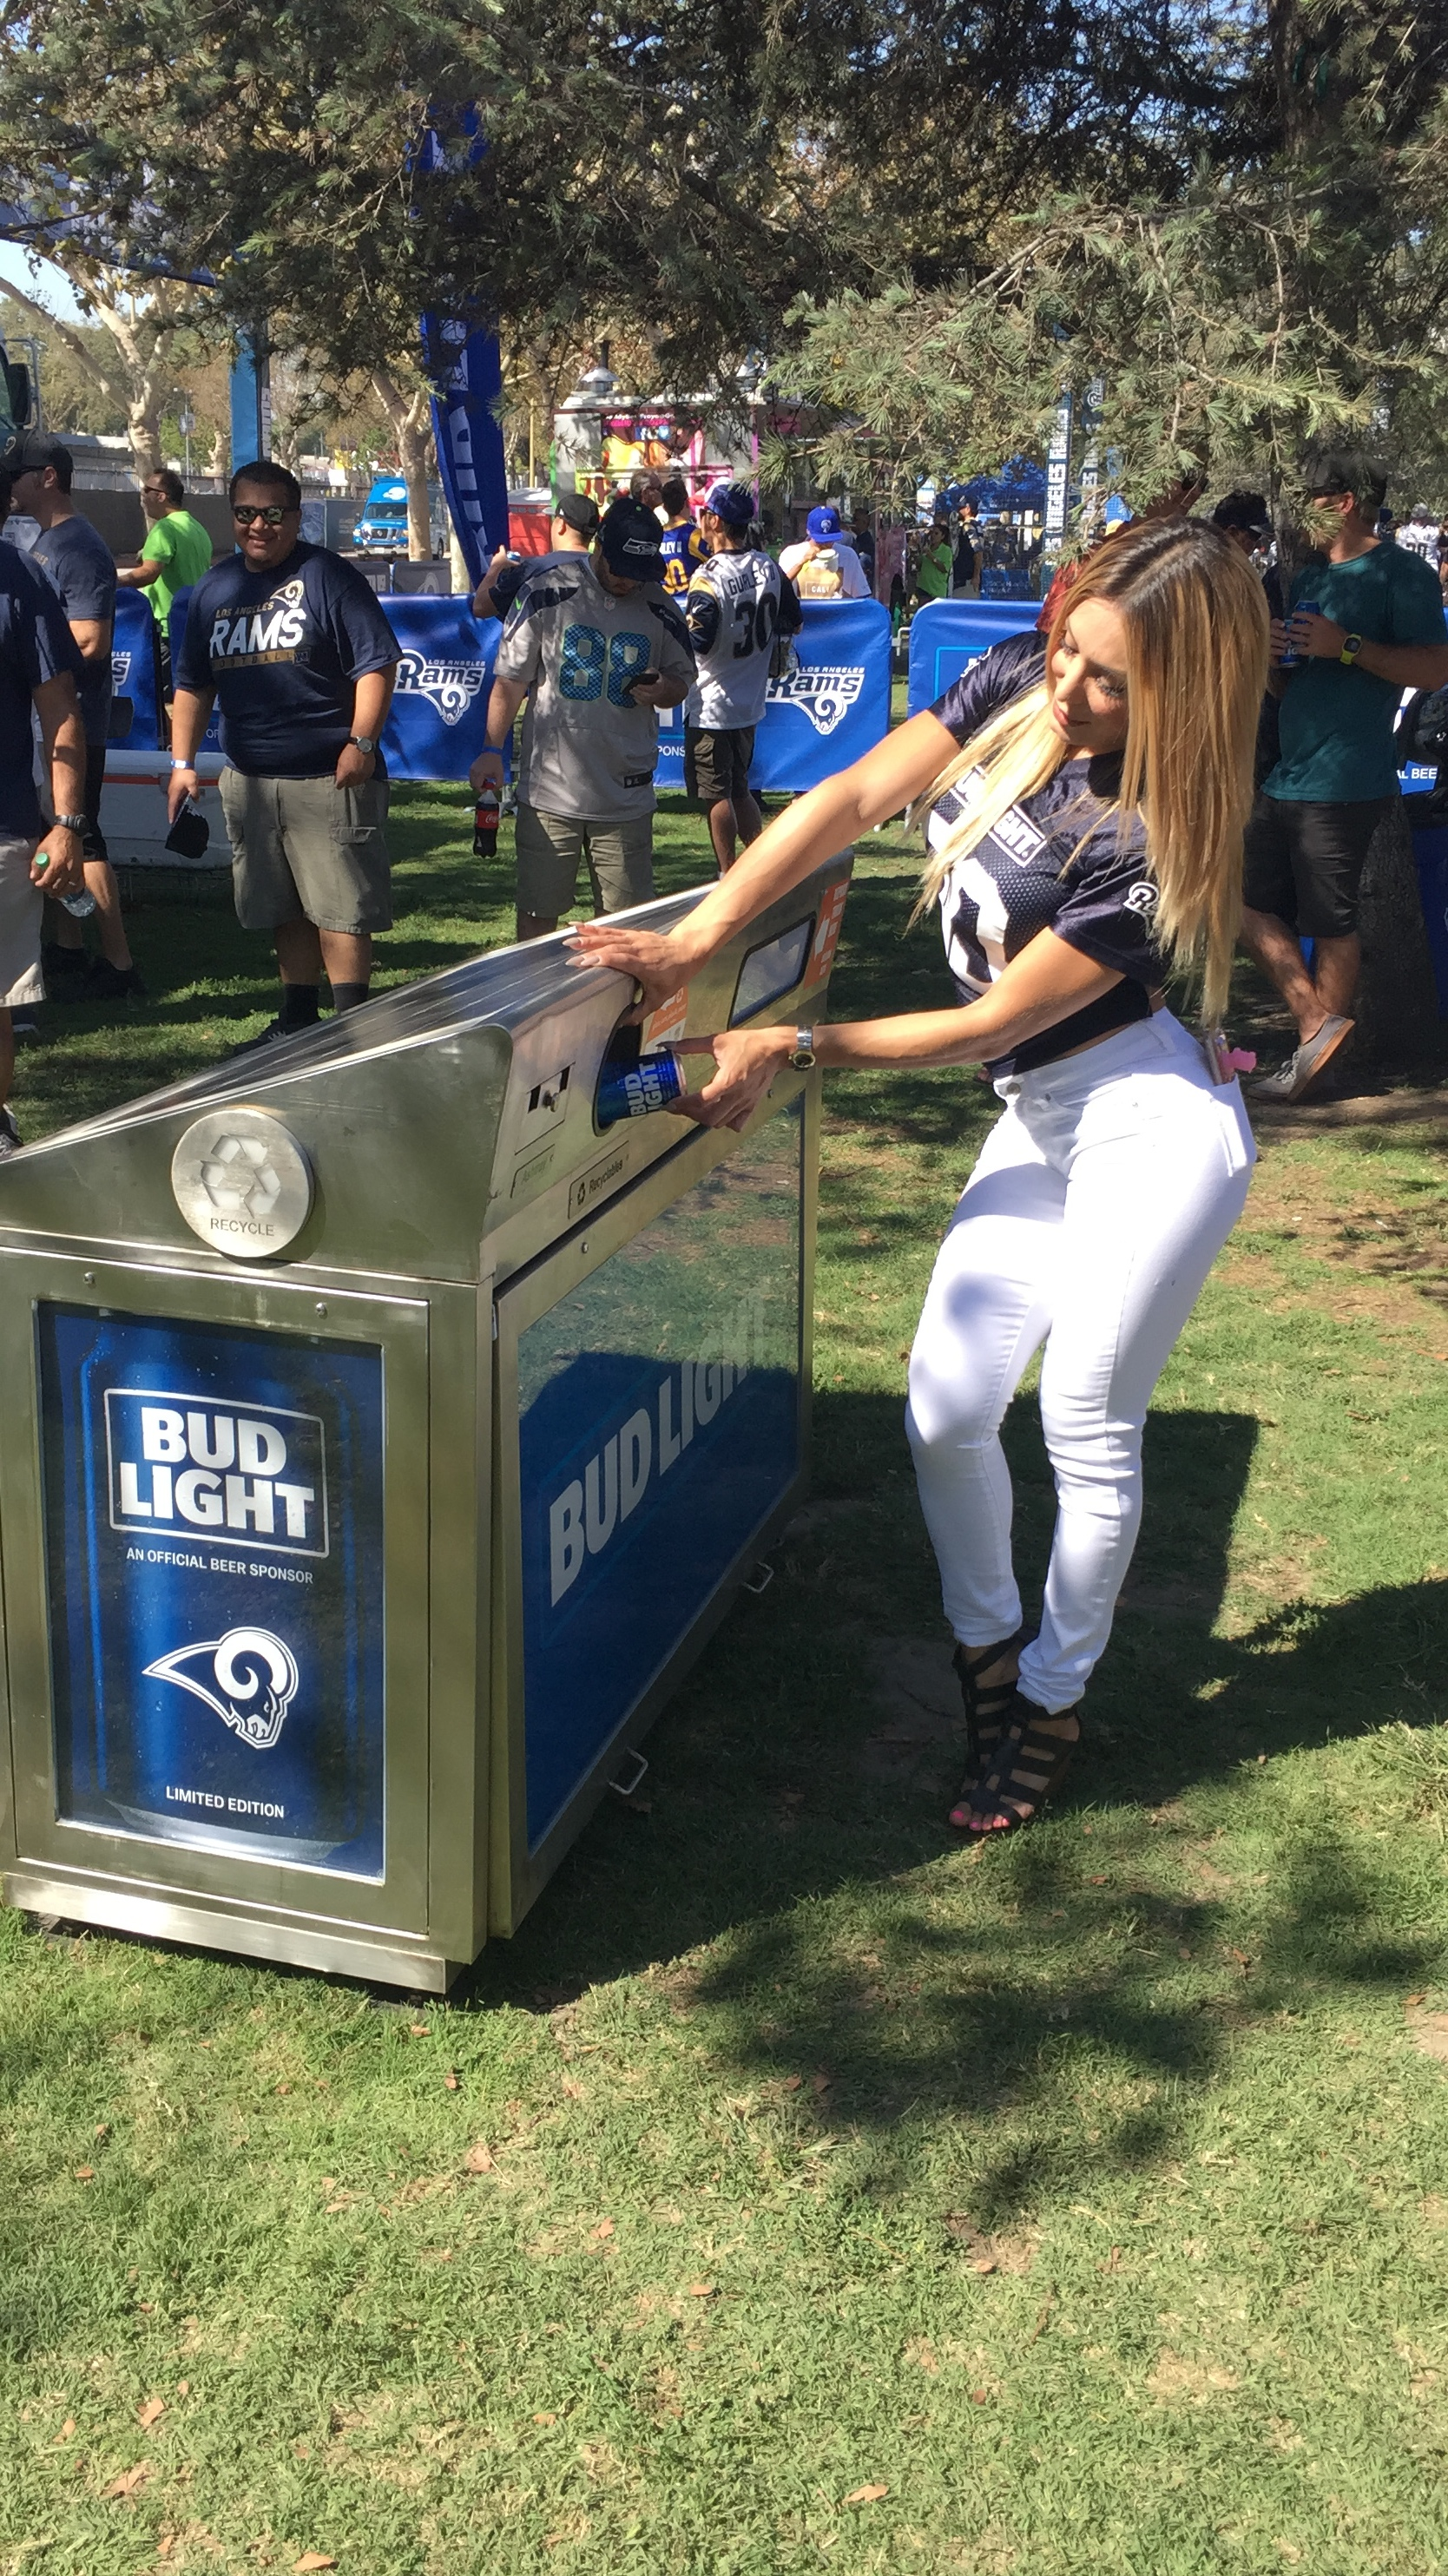 - ANHEUSER - BUSH and LA RAMS NFL TEAMPartner with SOLAR WIFI ECO BIN on their stadiums and product activations with Outstanding acceptance at all BUD LIGHT/ NFL RAMS, in Los Angeles area.With a Very positive feedback from the public on recycling awareness and FREE WIFI hots spots during events